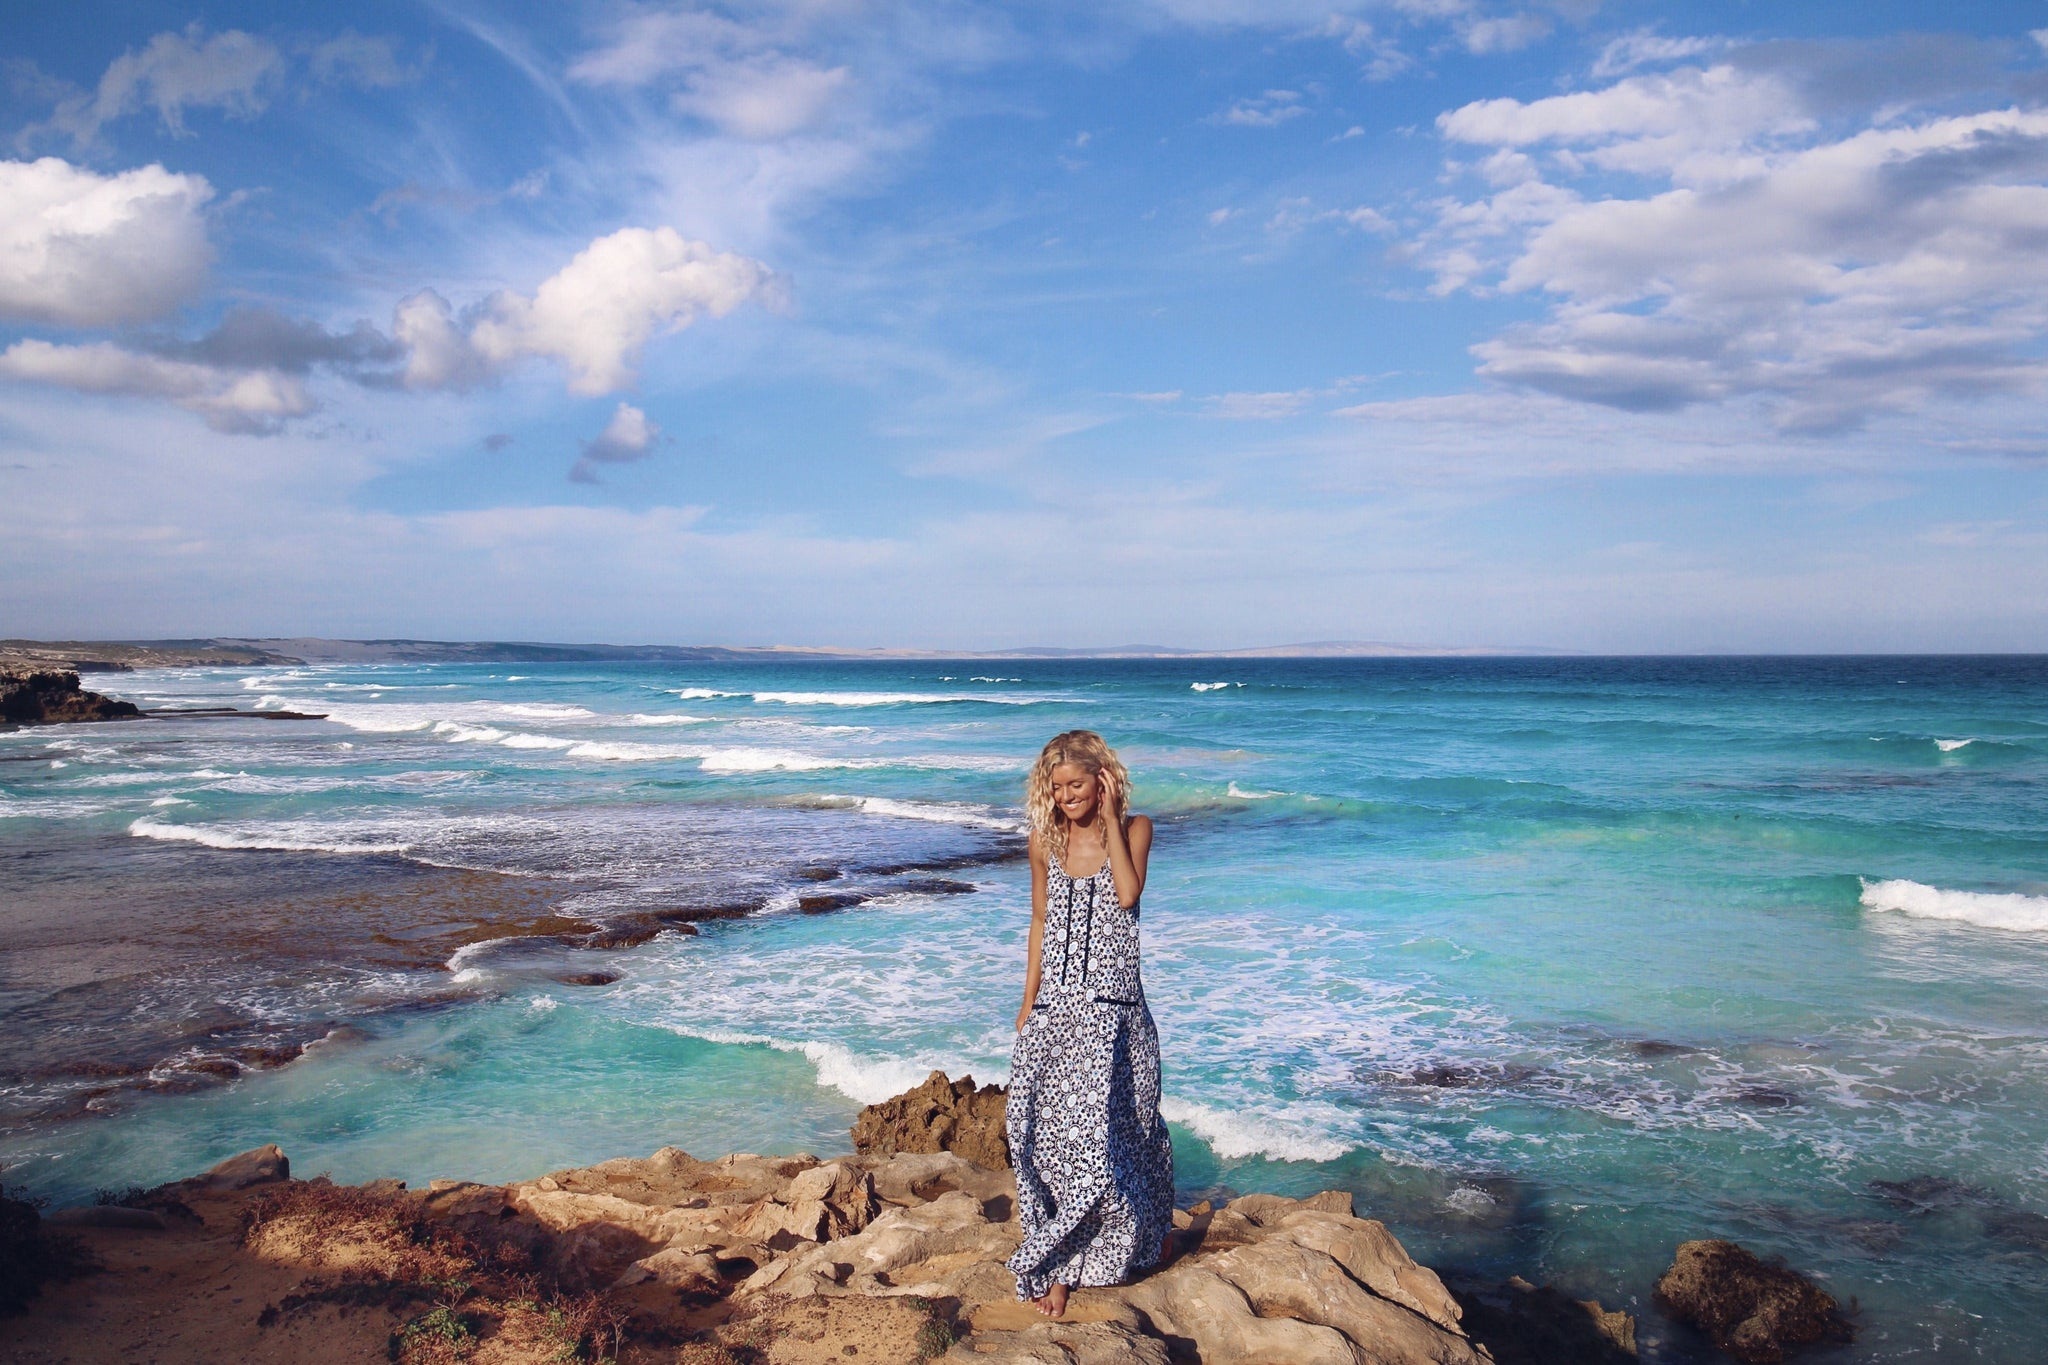 elisecook on the road with kivari blue temple drop dress